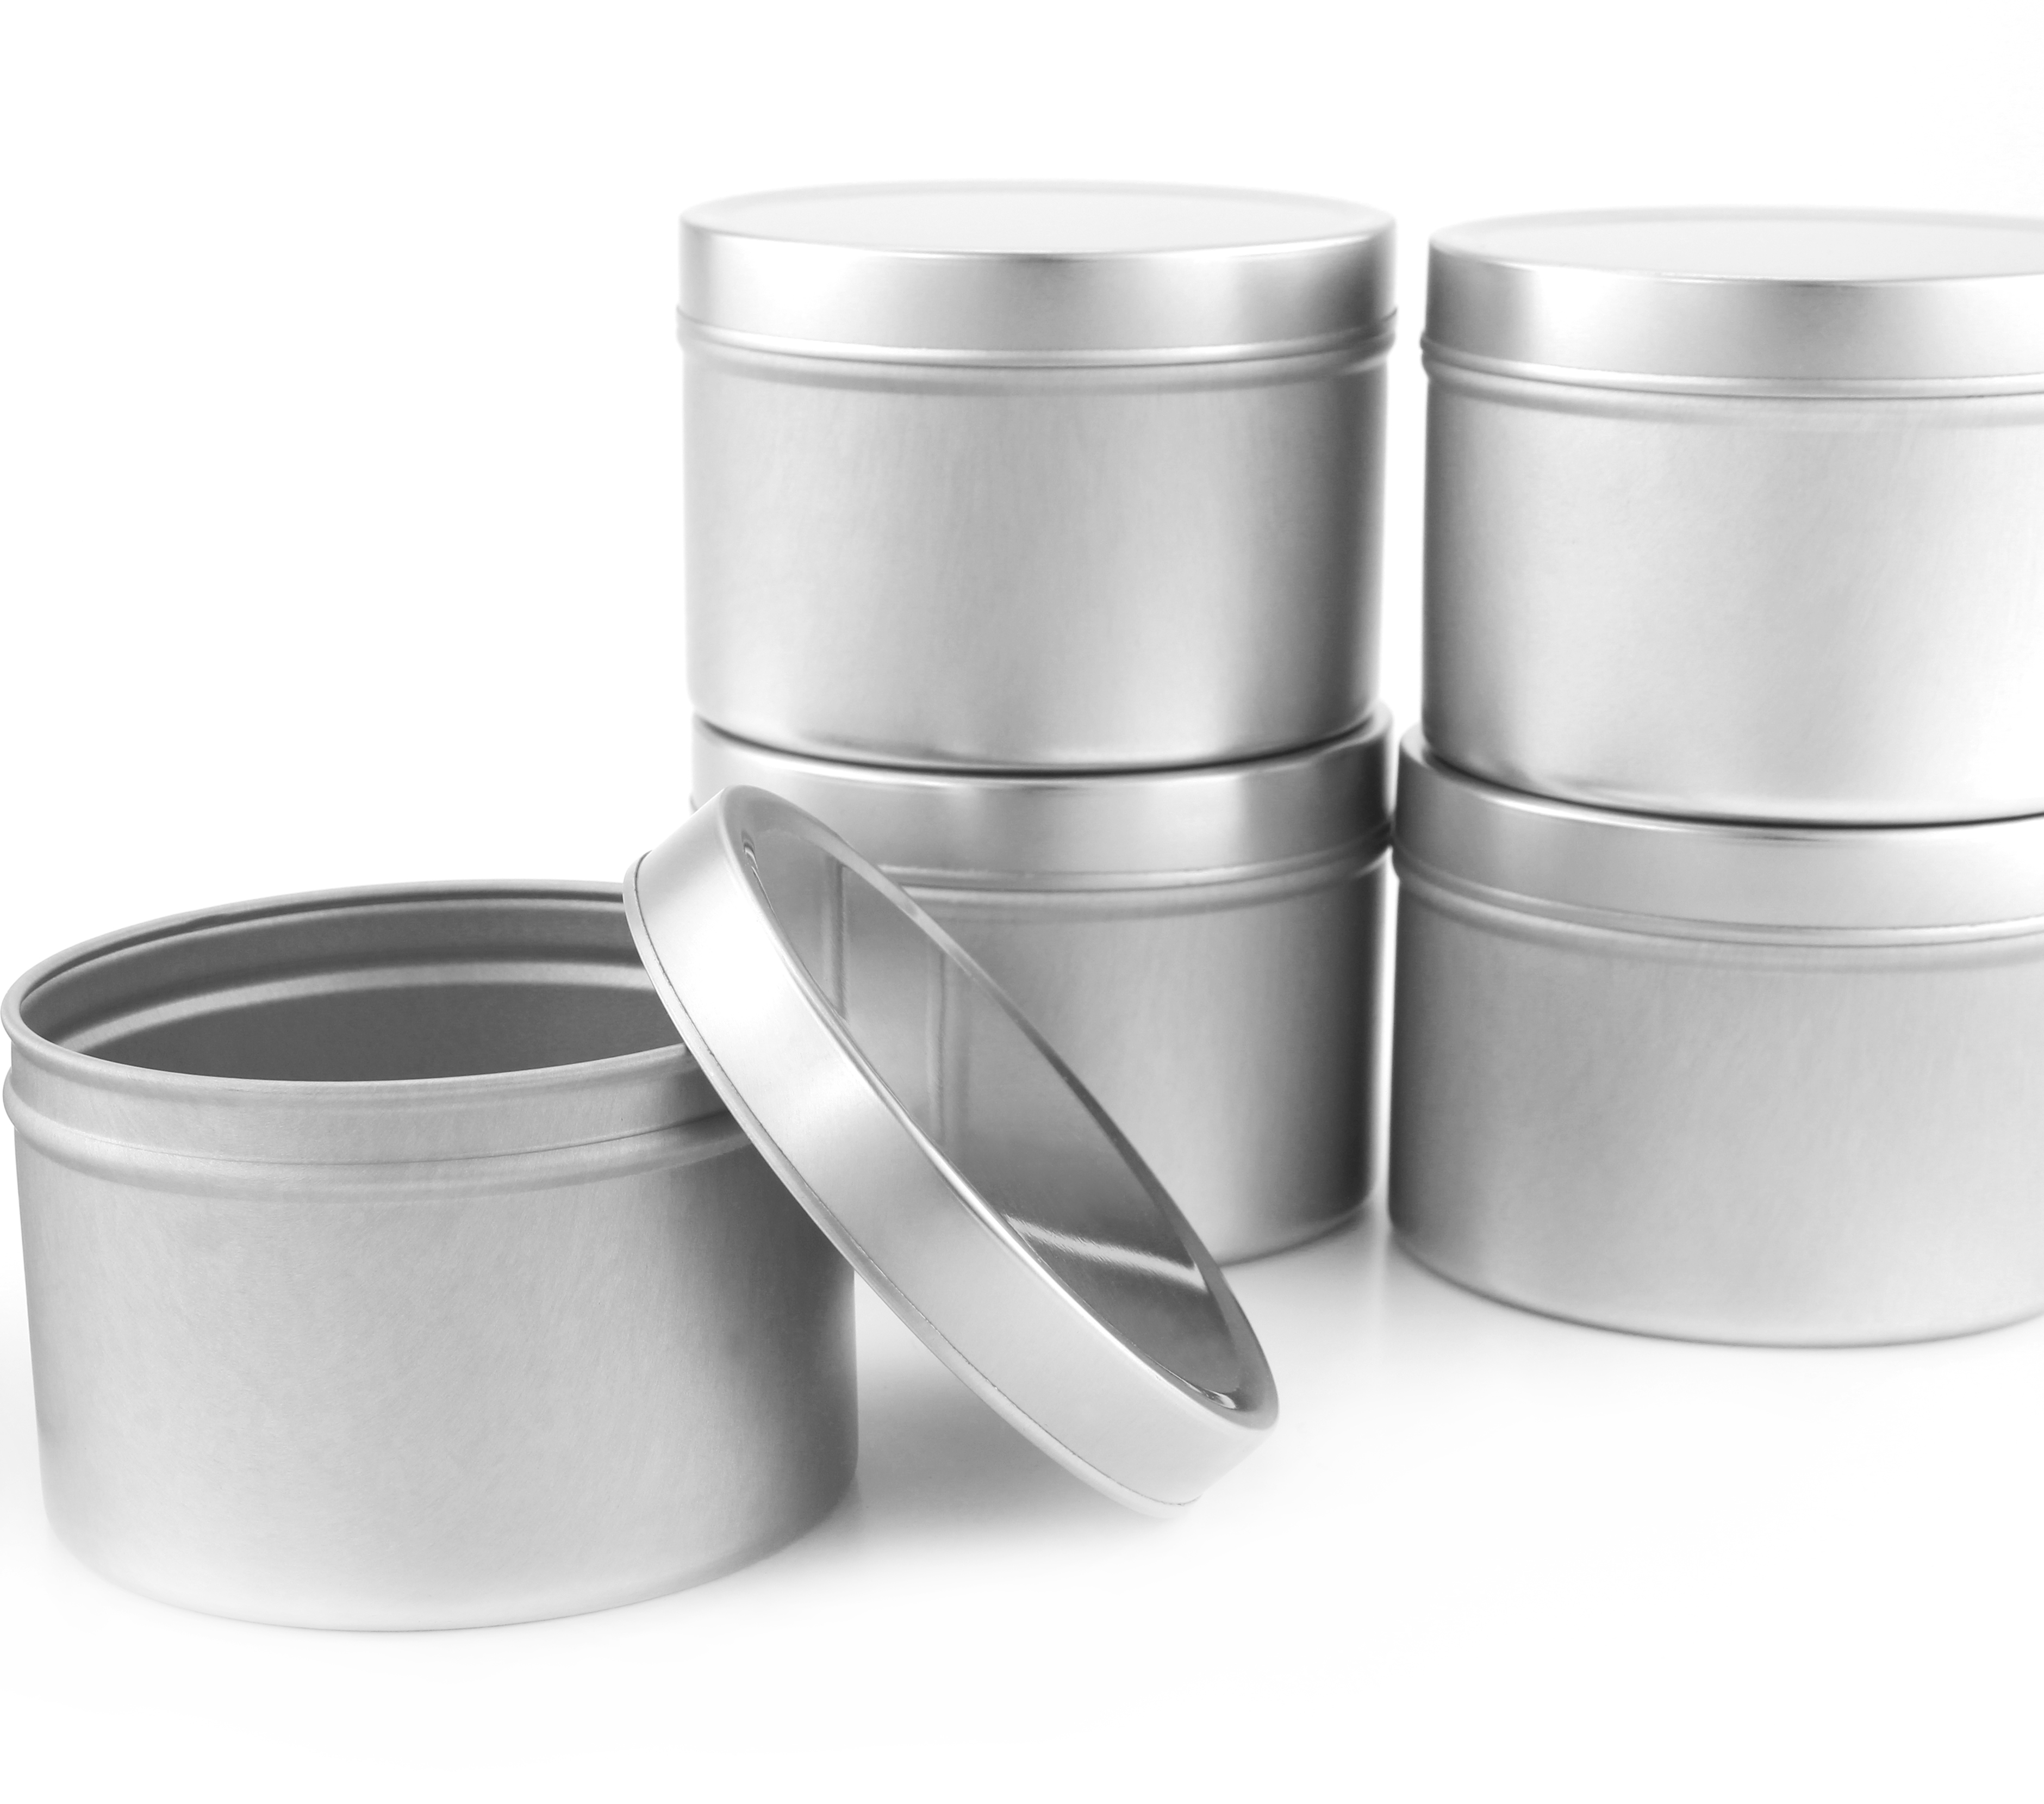 B017ISZ84O - Medium 8oz DIY Candle Tin Jars, Great Survival Candle Tins (6 Pack) 5